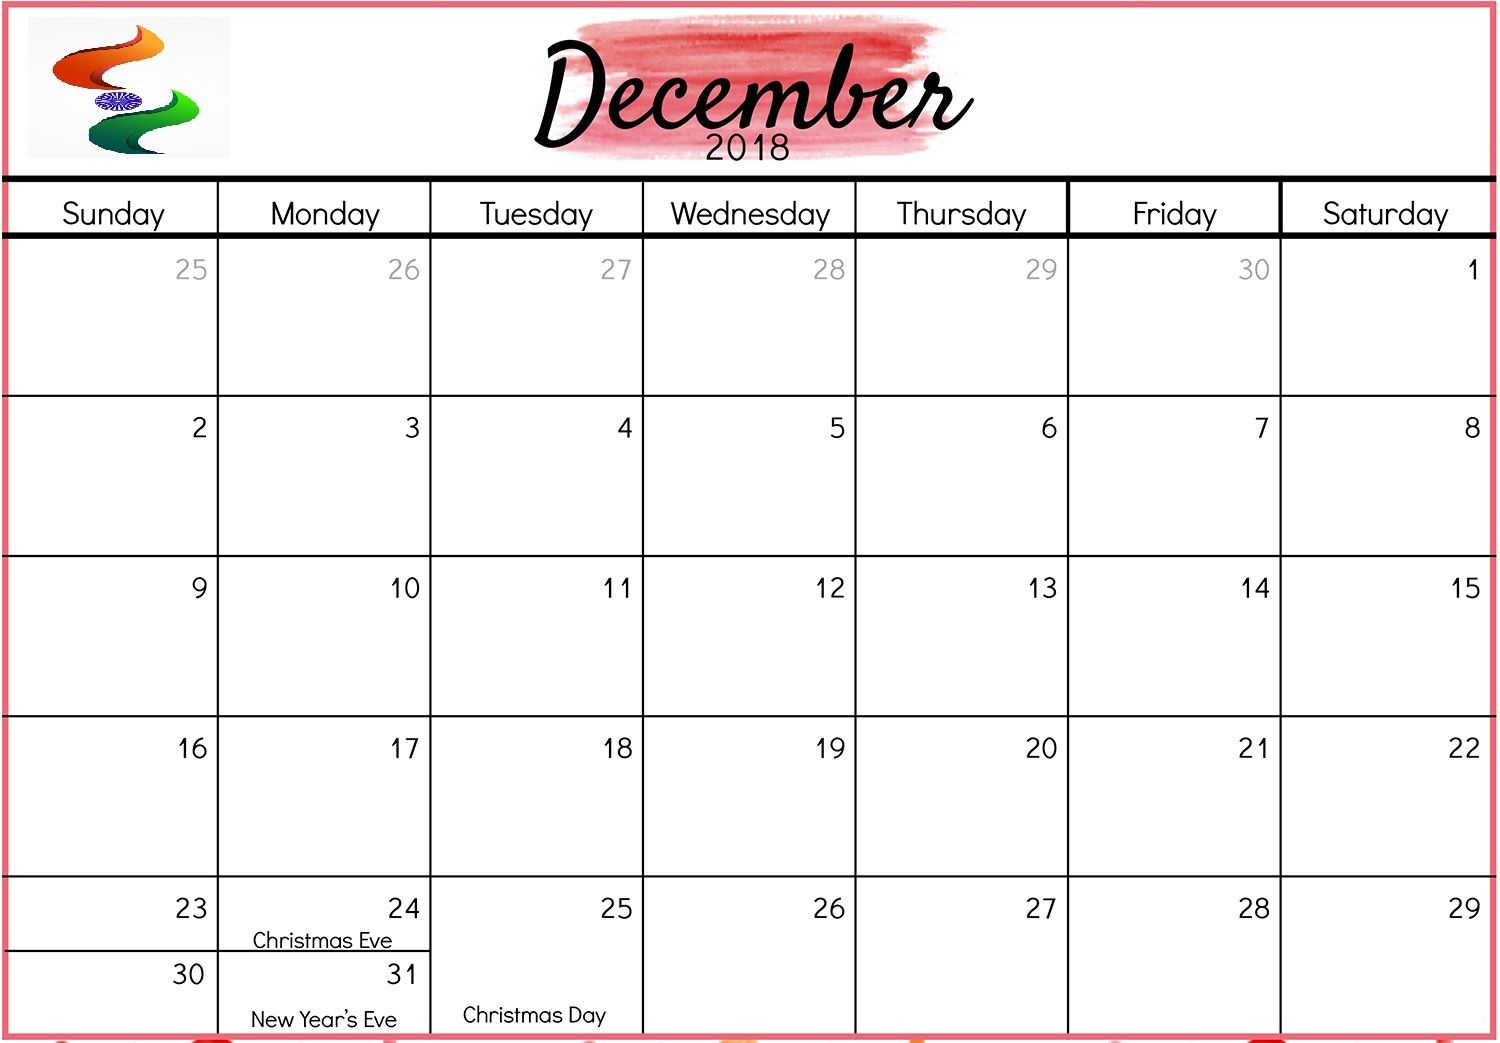 picture regarding December Calendar Printable With Holidays named December 2018 Calendar India Printable 100+ December 2018